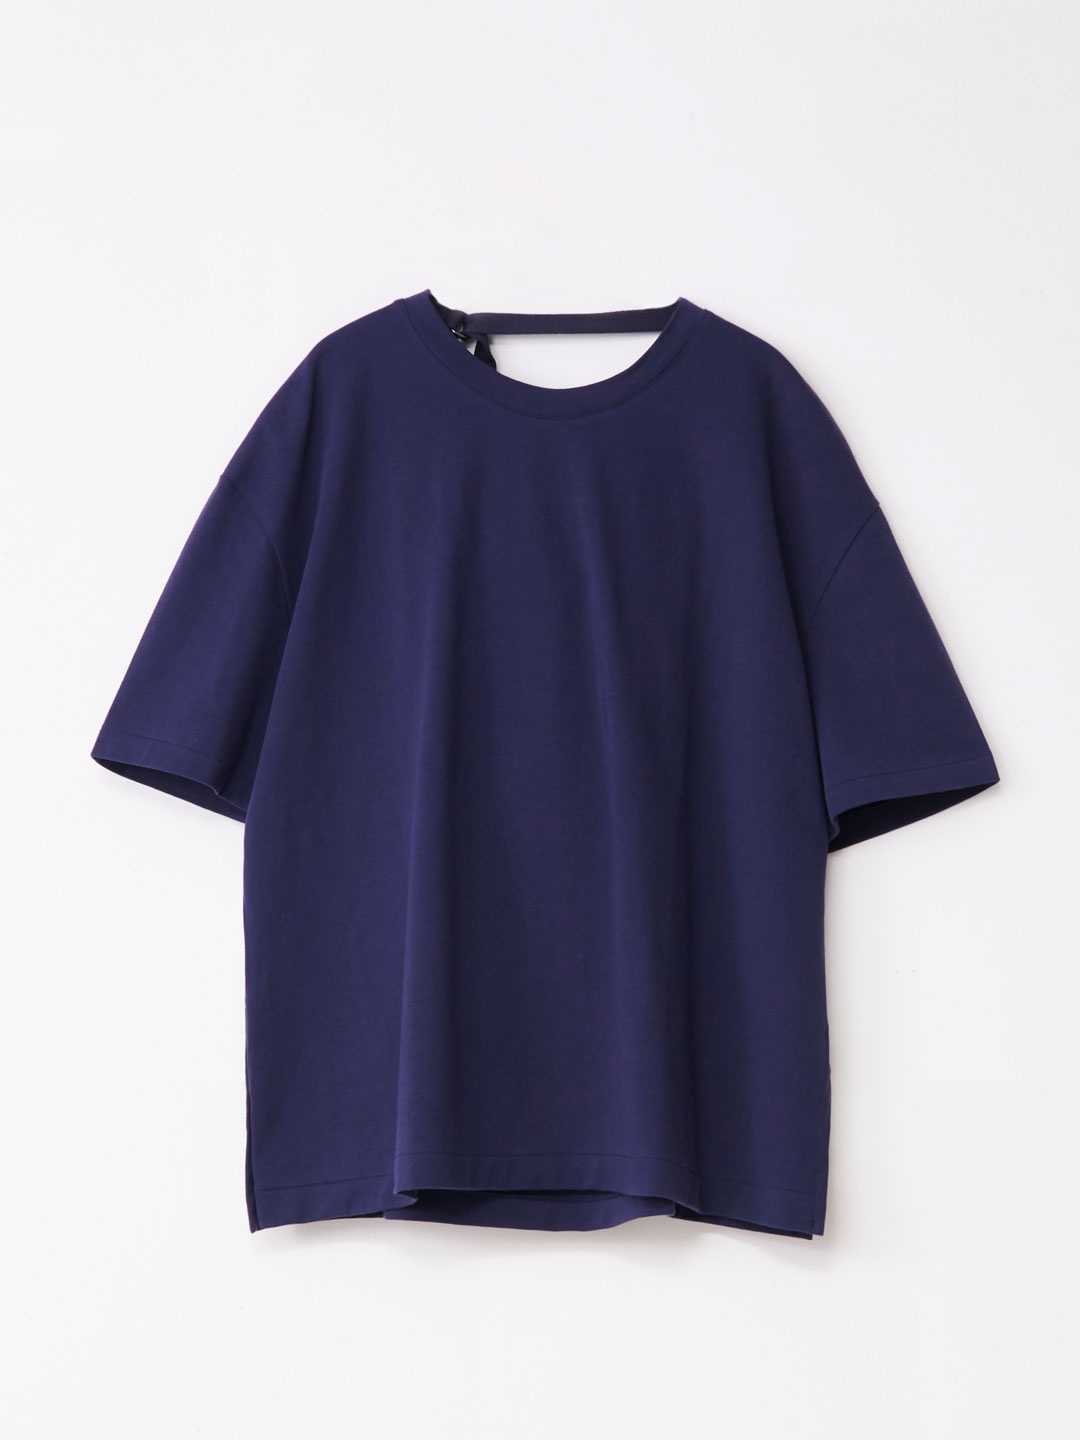 Draped Back Tee - Navy【LIMITED ITEM】